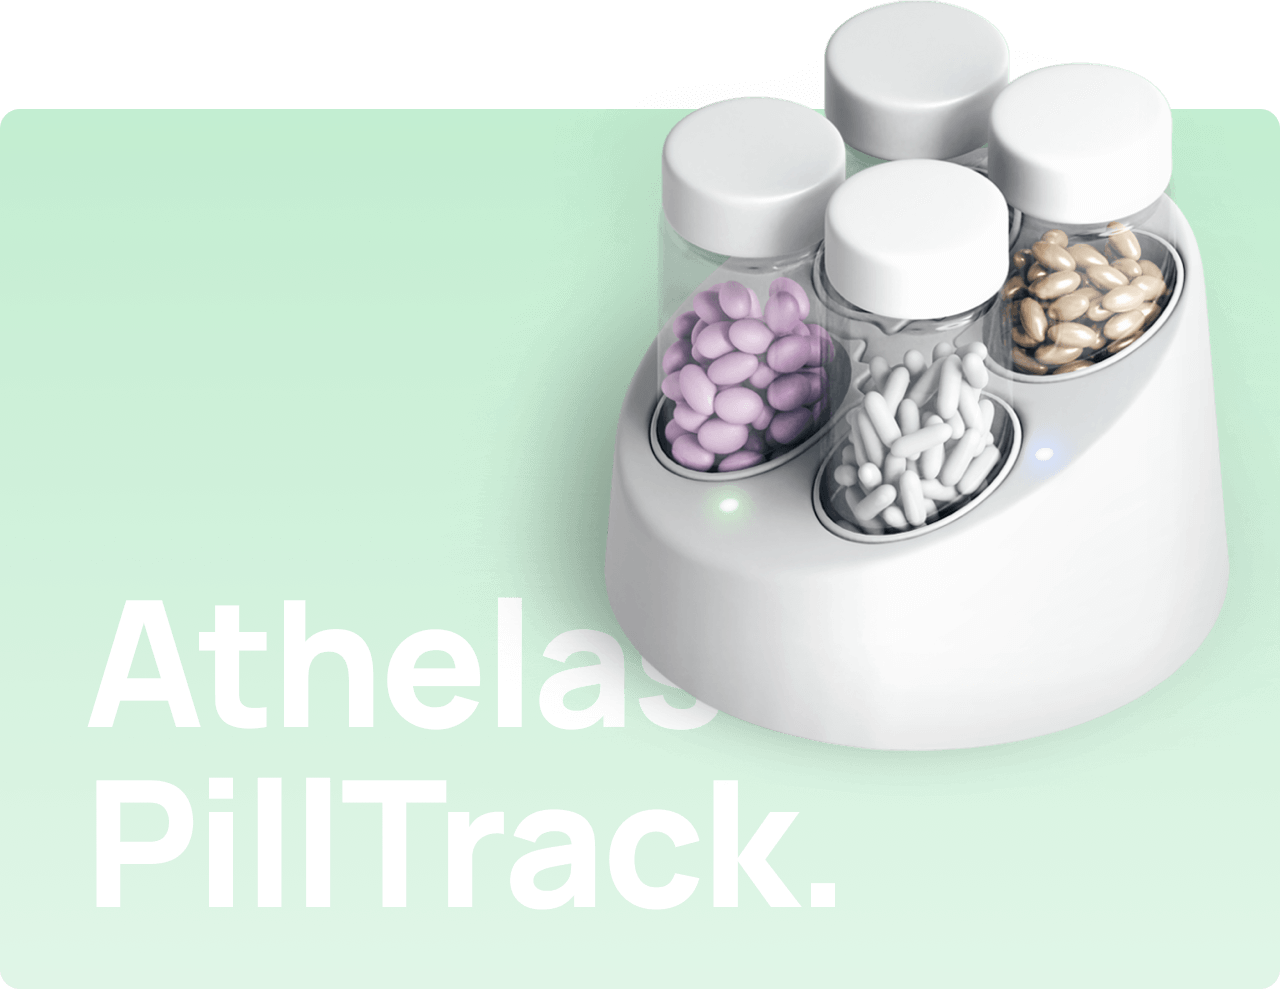 Our state of the art PillTrack